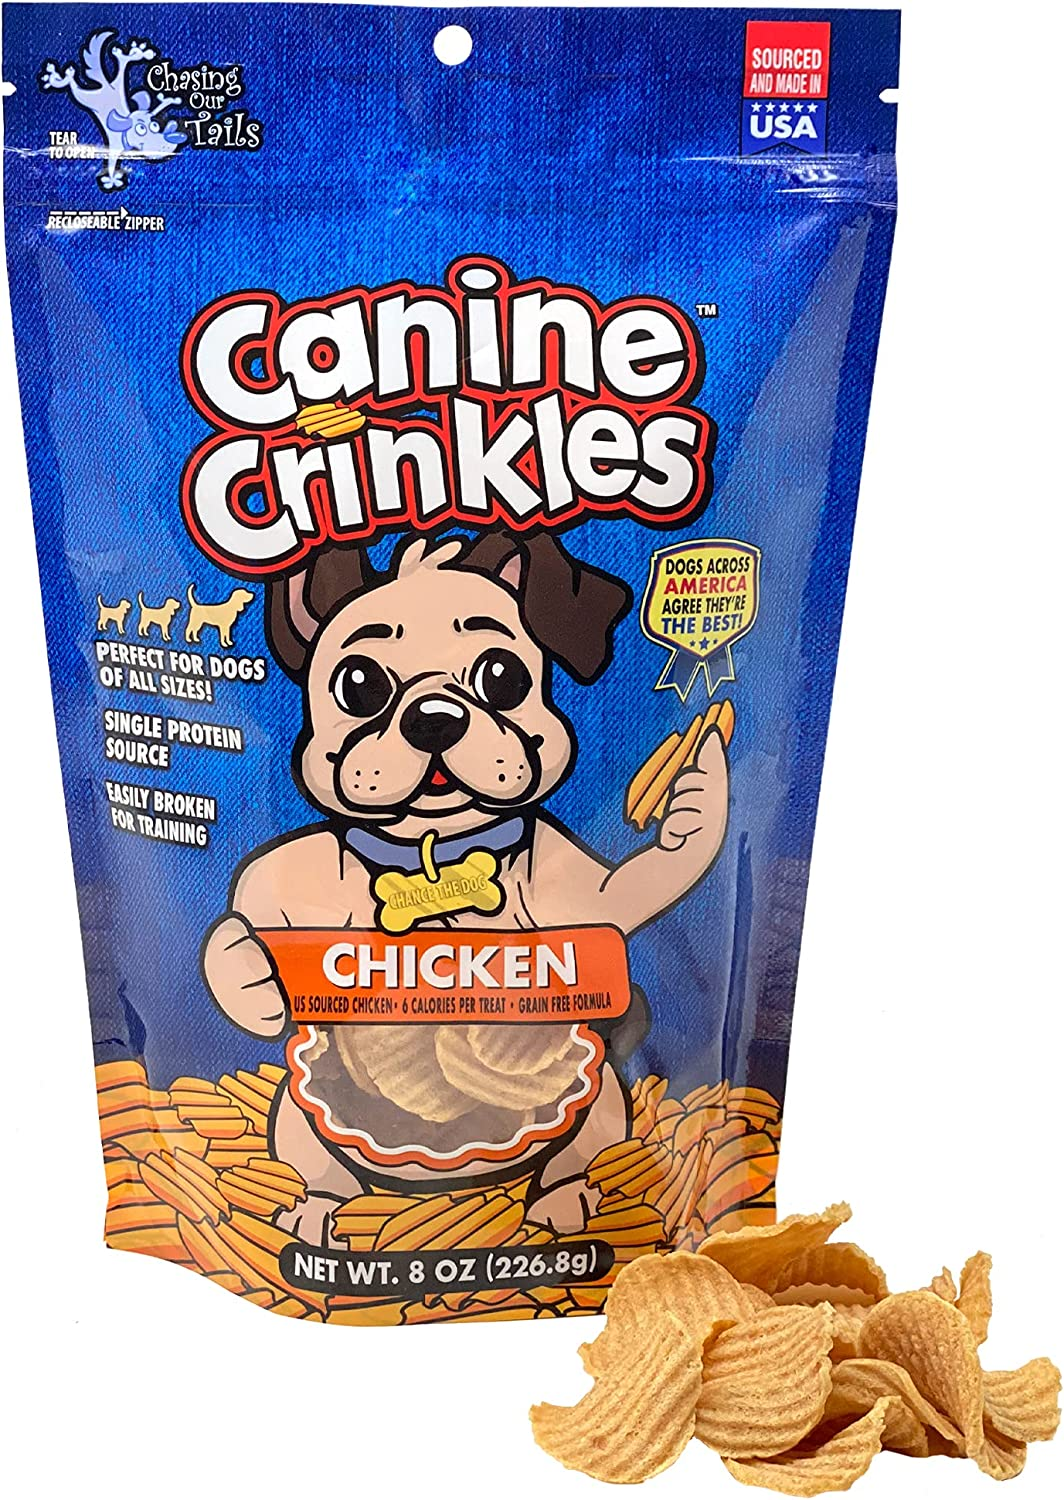 Canine Crinkles Chicken Chips for Dogs - Crispy Dehydrated Chicken Treats for Dogs Made from Simple Ingredients Your Dog Will Beg for - Sourced & Made in The USA - Grain & Rawhide Free - 8 oz